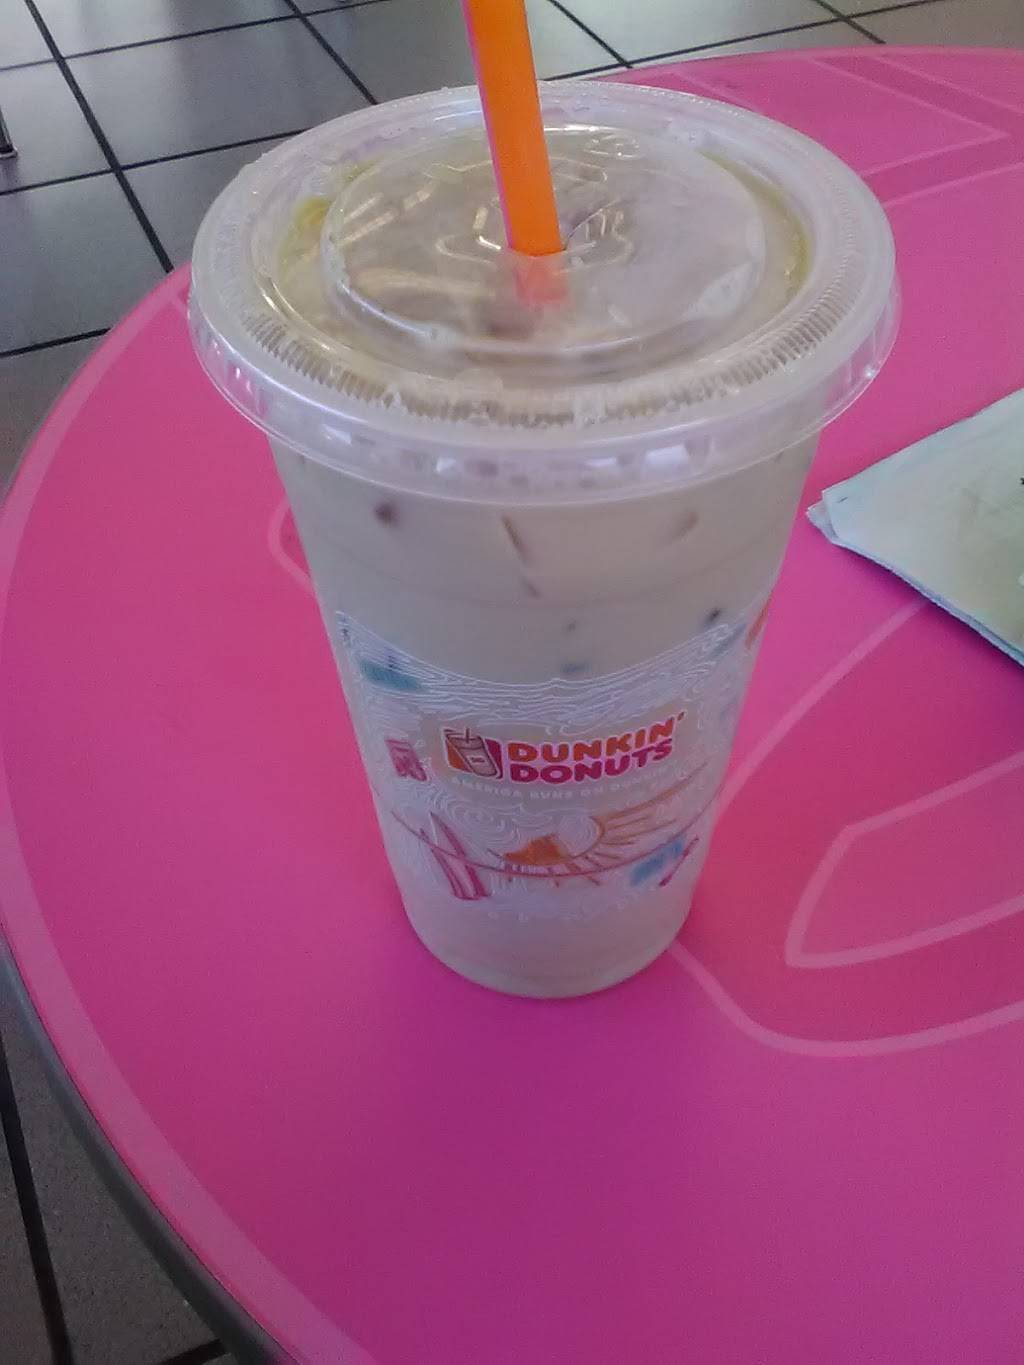 Dunkin Donuts   cafe   7306 Calumet Ave, Hammond, IN 46324, USA   2199330853 OR +1 219-933-0853